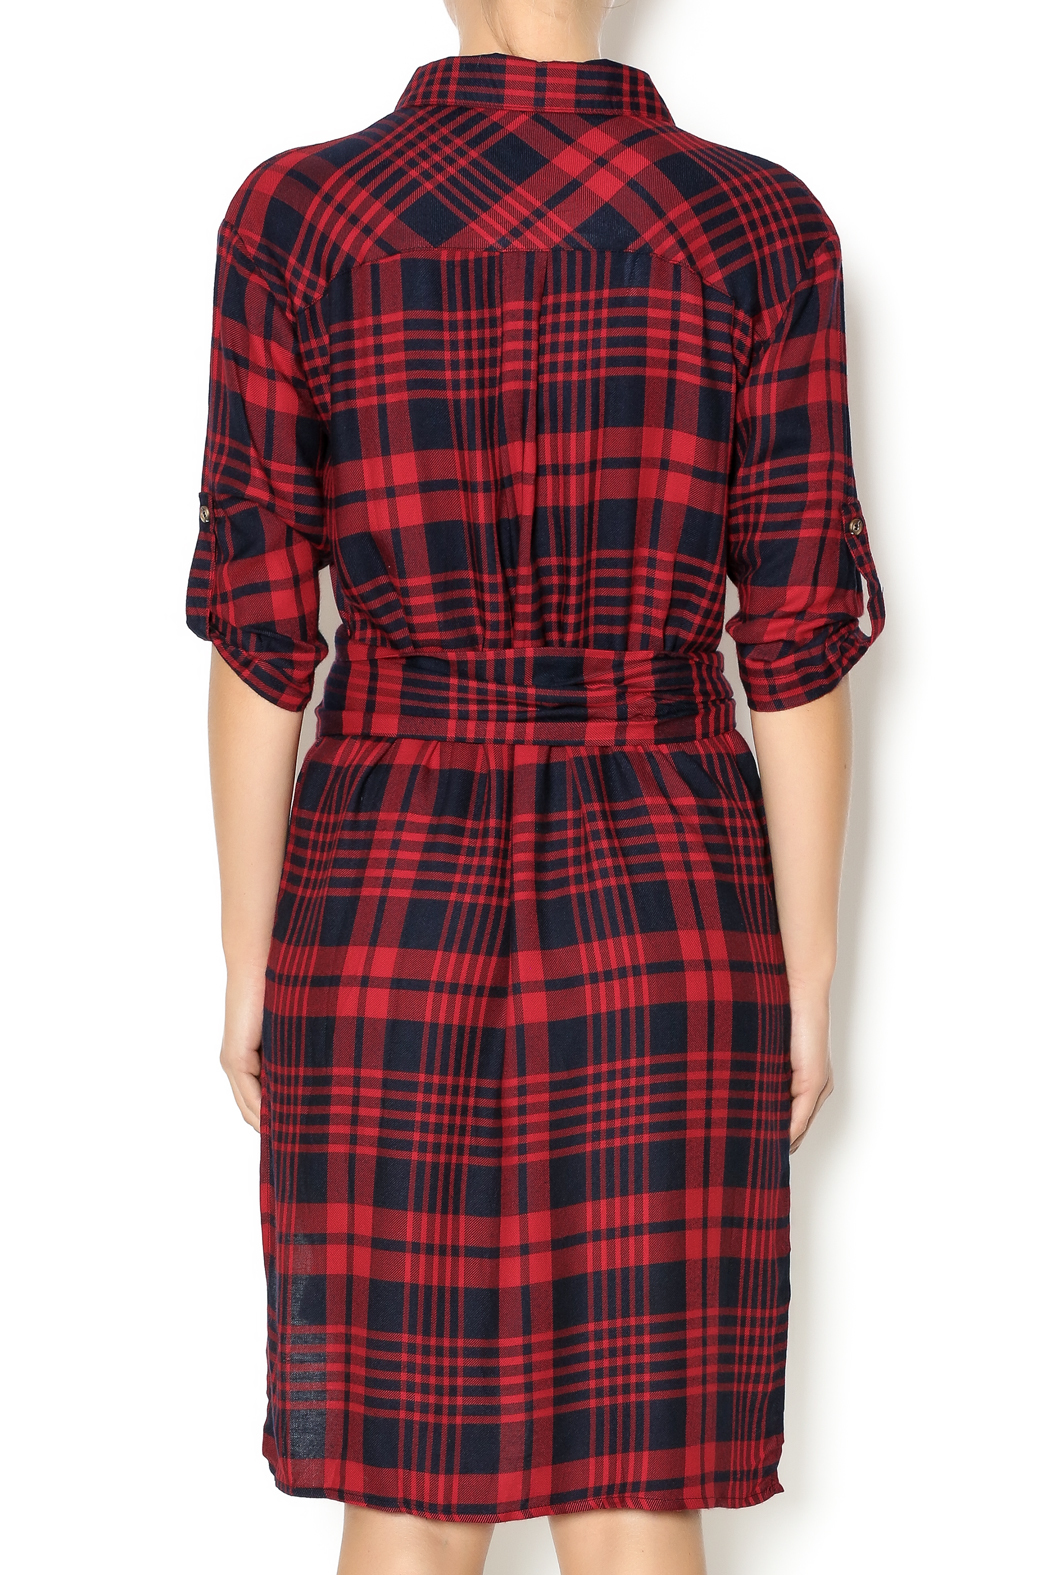 Essue Red Plaid Dress From New York City By Dor L'Dor